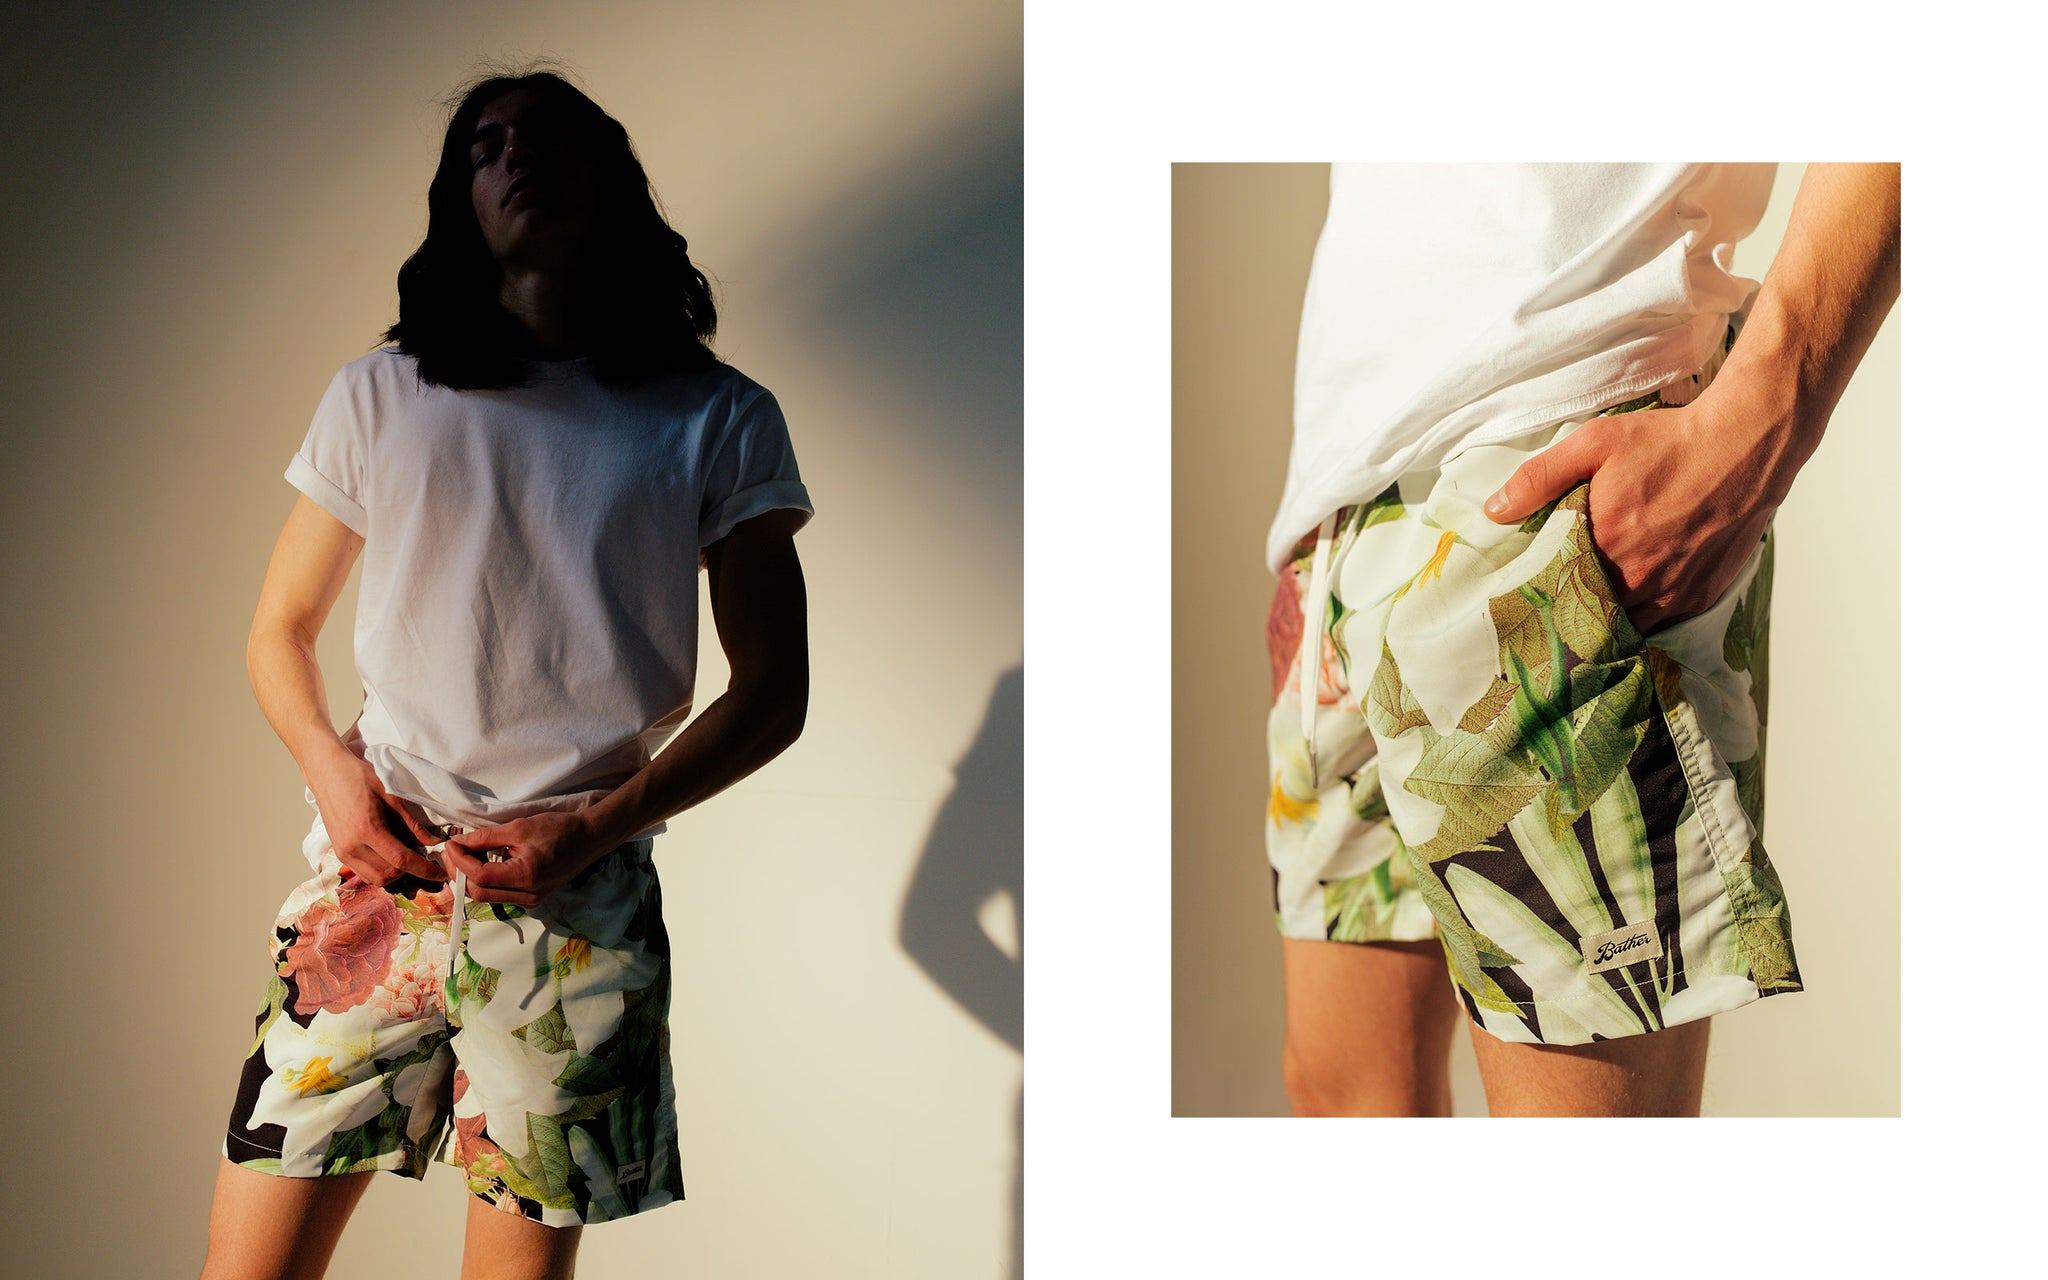 Bather SS18 Lookbook featuring the Bouquet Swim Trunk